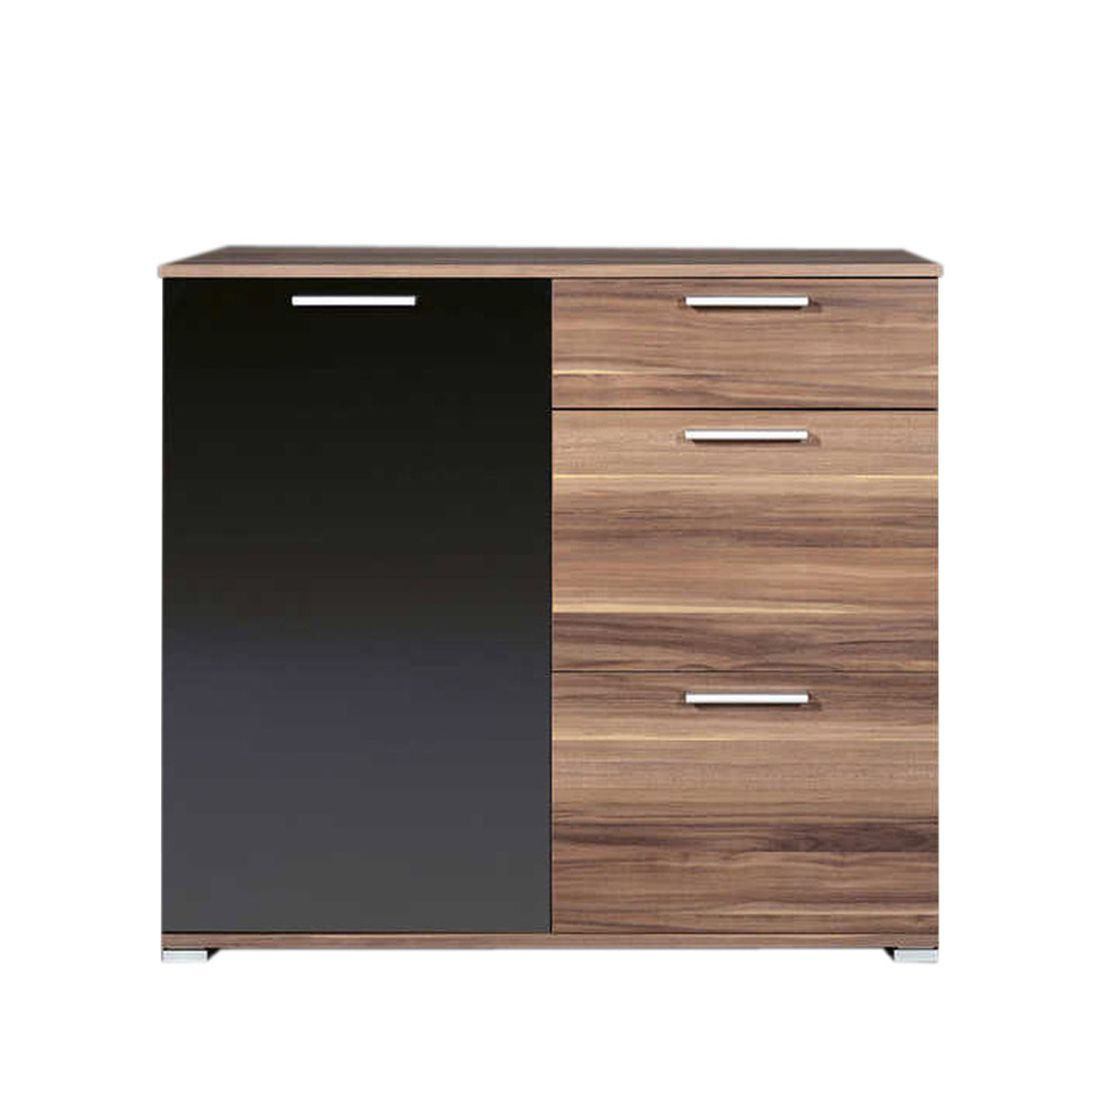 limi kommode klein walnuss nachbildung schwarz. Black Bedroom Furniture Sets. Home Design Ideas